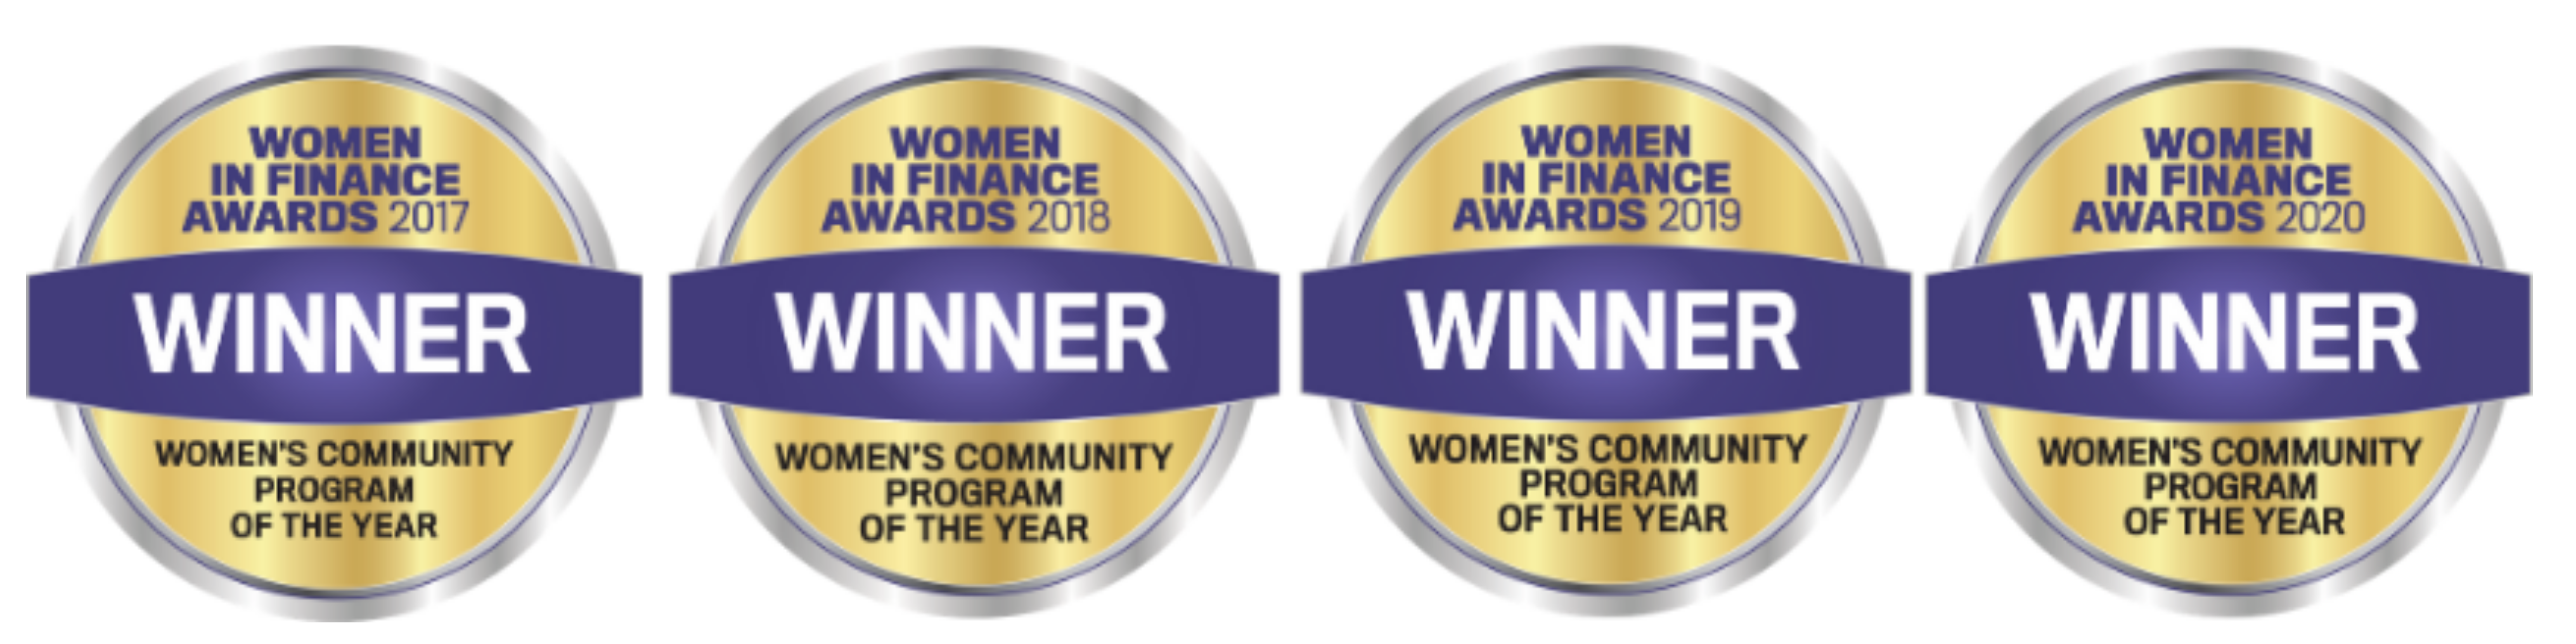 https://womenwithcents.com.au/wp-content/uploads/2021/08/awards-1.png